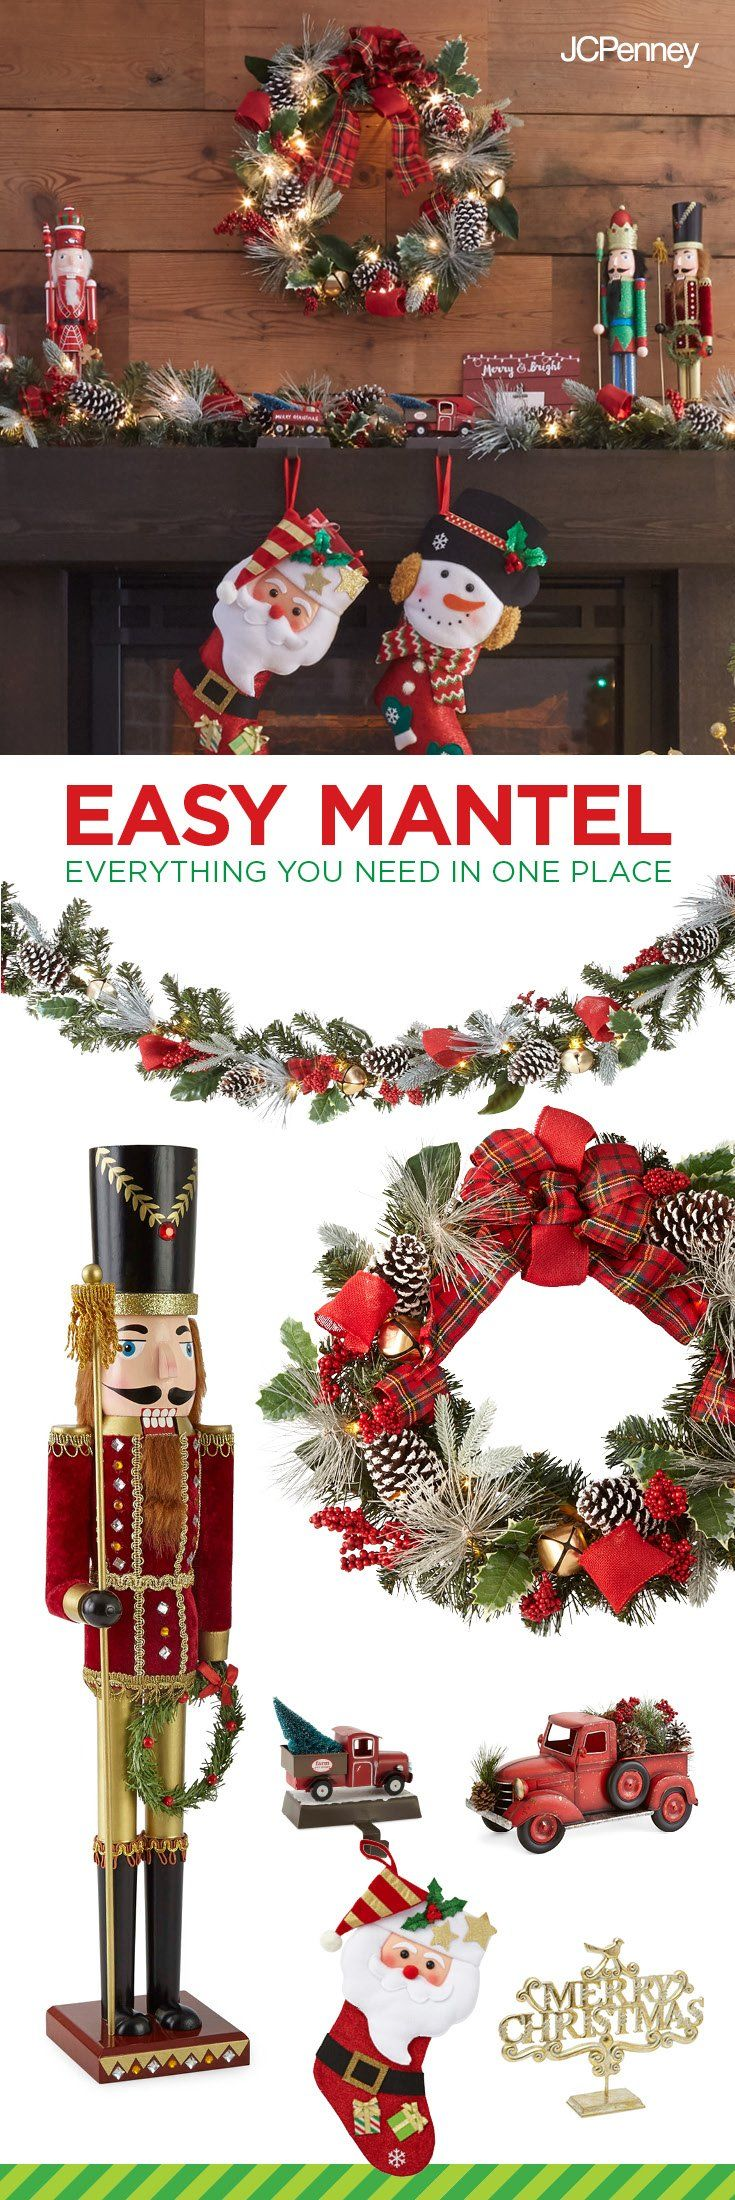 Tap to Shop!// Make your mantle merry with one-stop shopping at JCPenney. Pre-lit Christmas Wreath and garland? Check. Traditional nutcracker soldier? Check, check. Dozens of jolly St. Nick Knick-knacks? All here. So stop stressing and start decking.